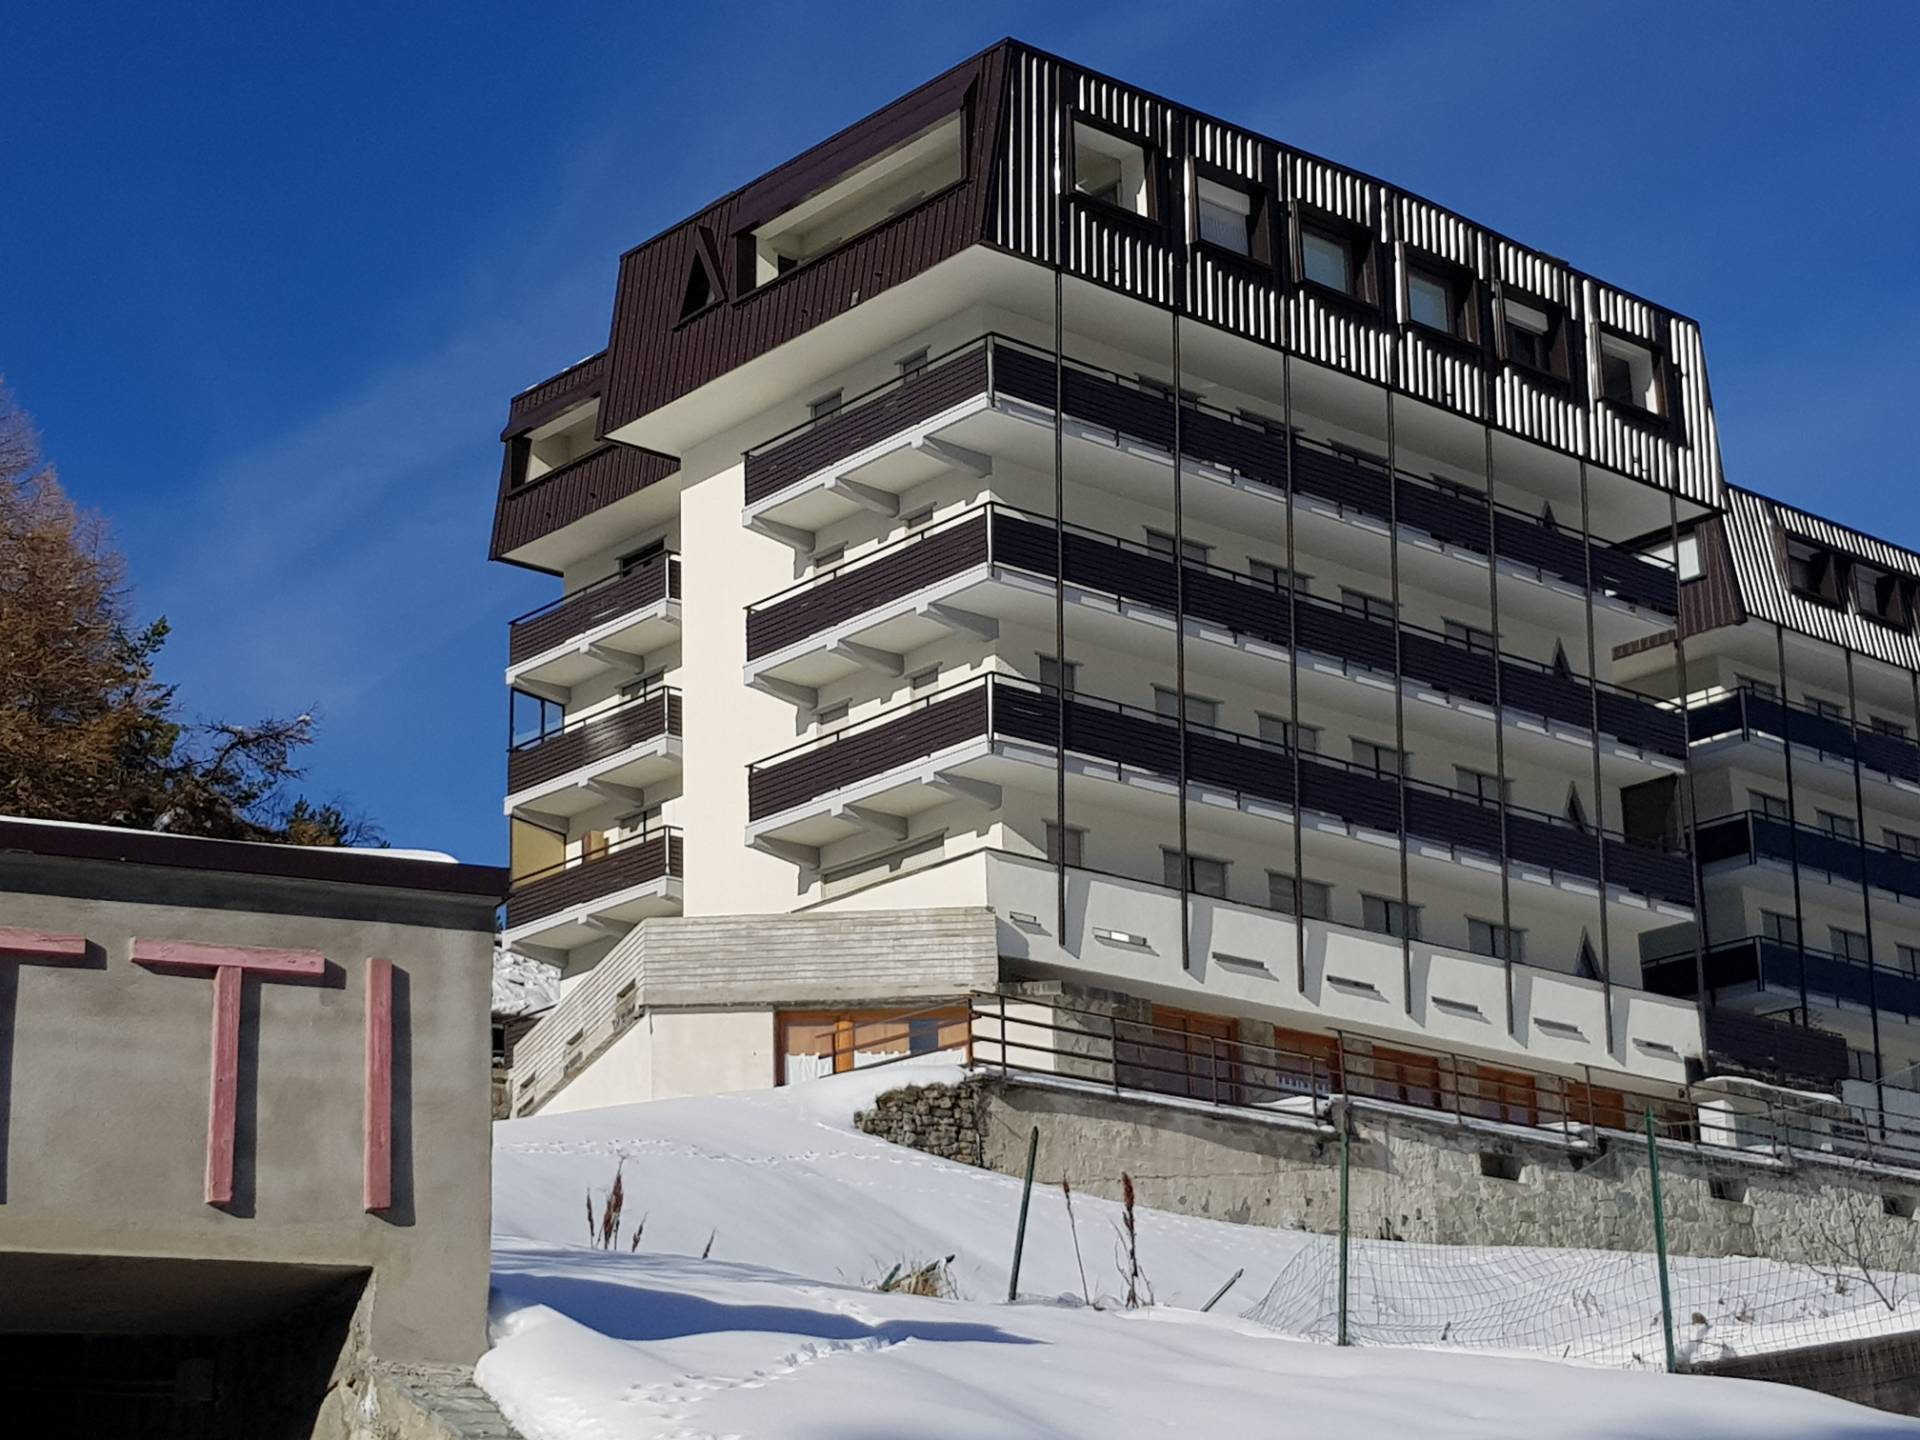 Immobile a Sestriere